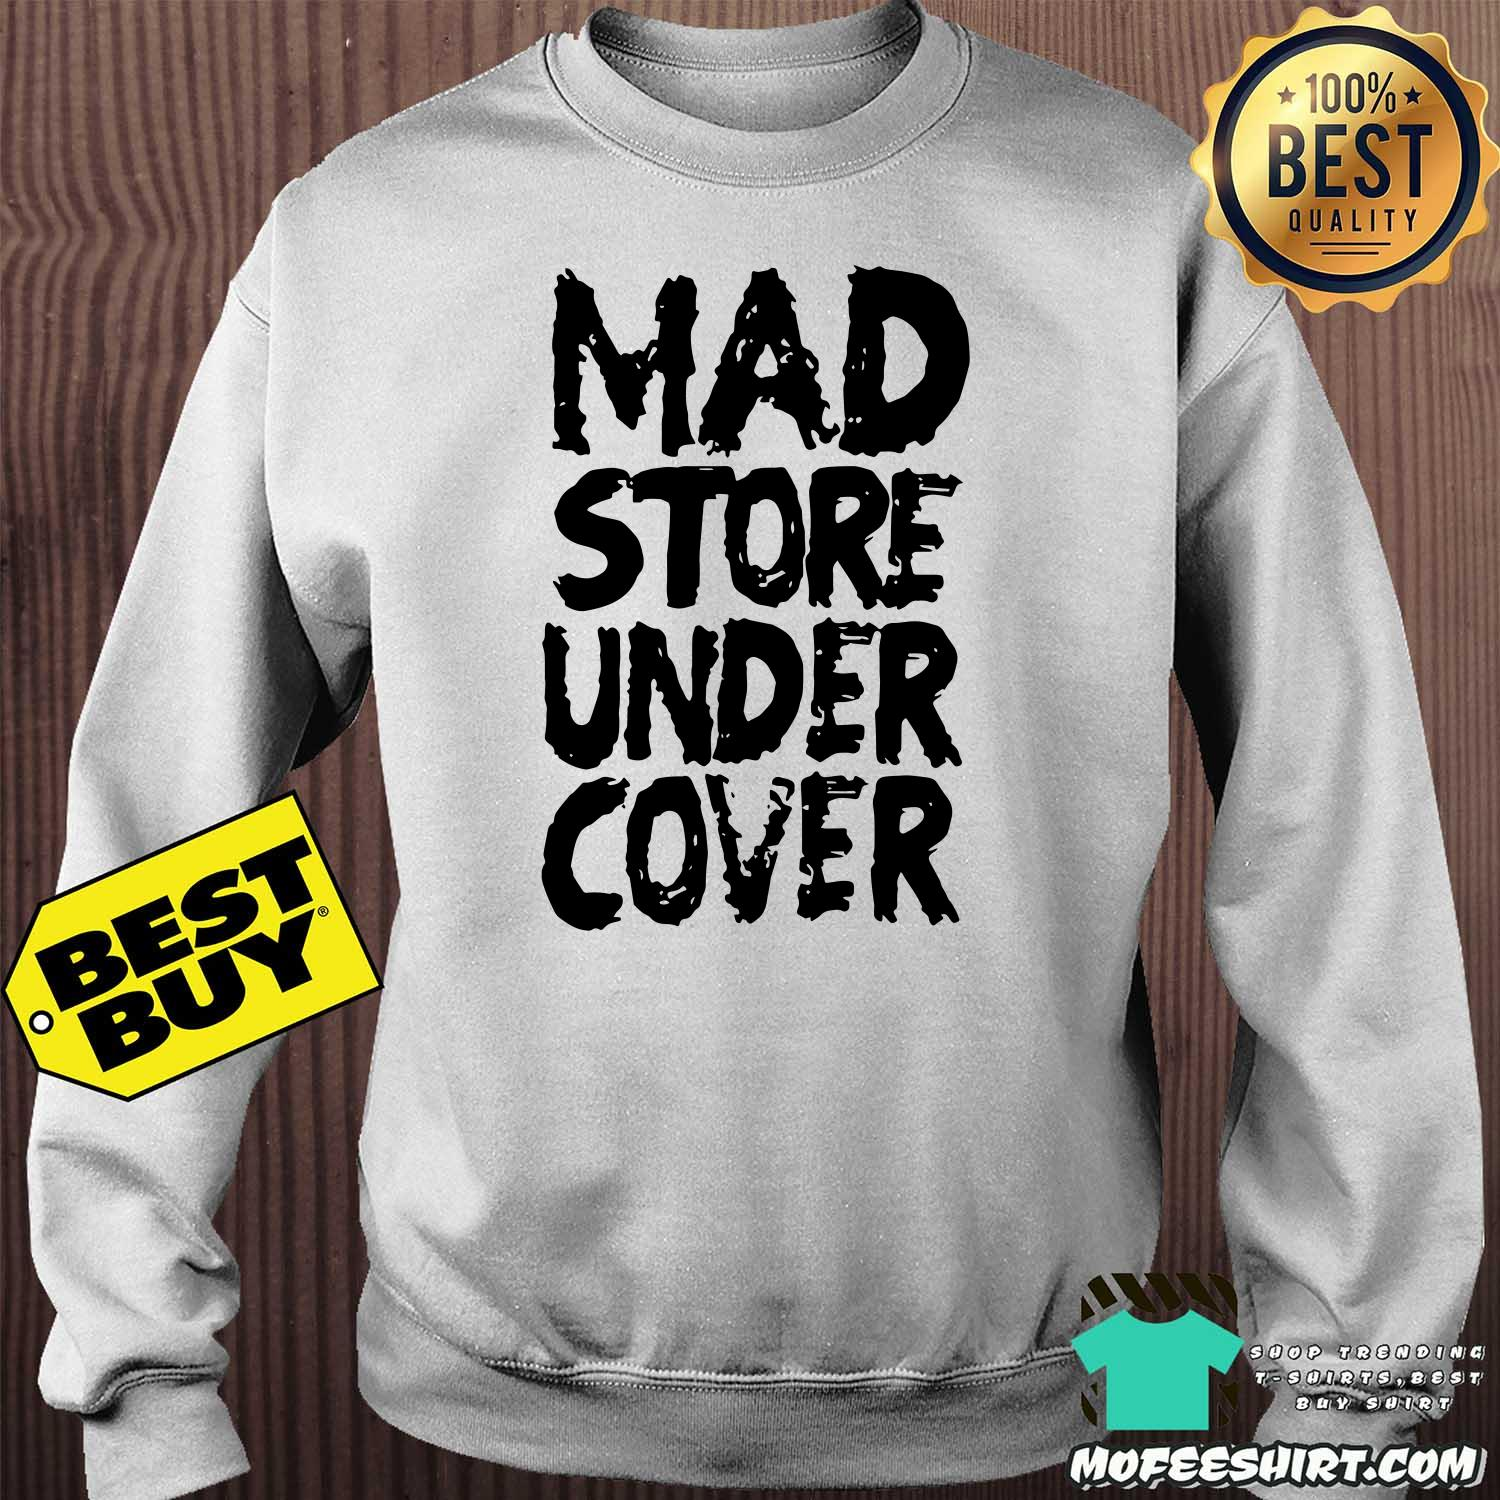 mad store under cover sweatshirt -  Mad Store Under Cover shirt